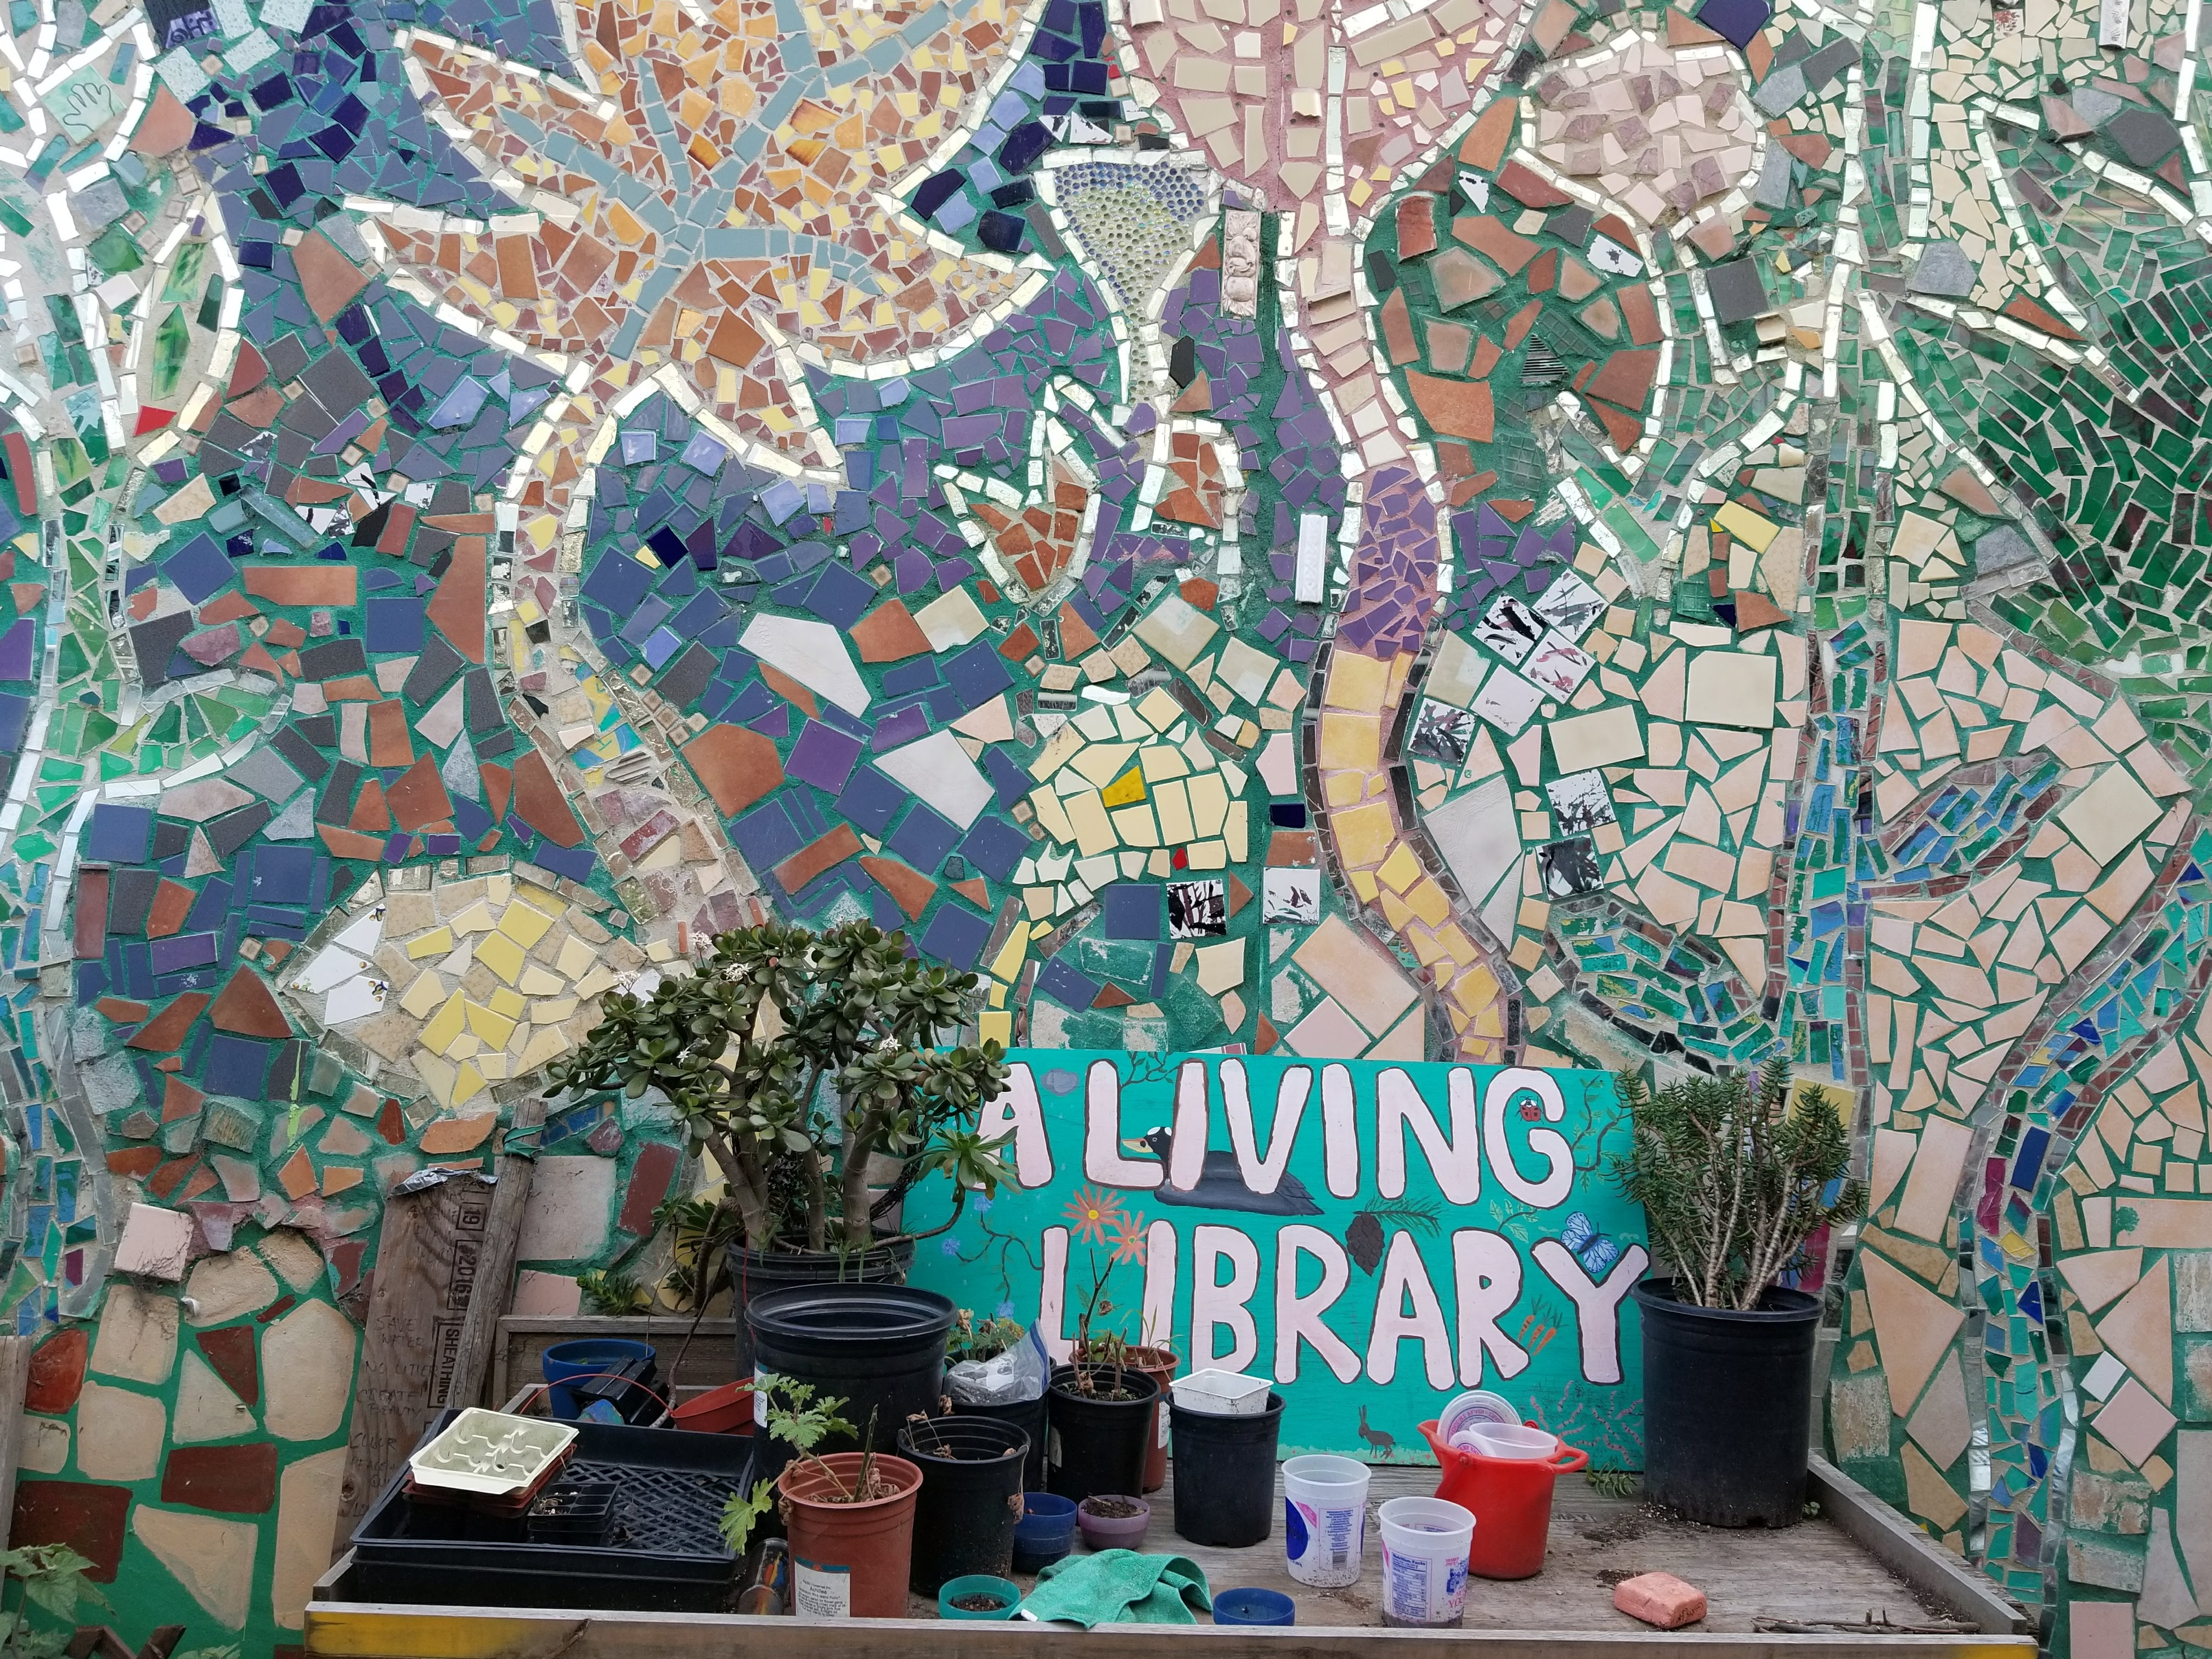 OMI/ Excelsior Living Library, Lower Garden